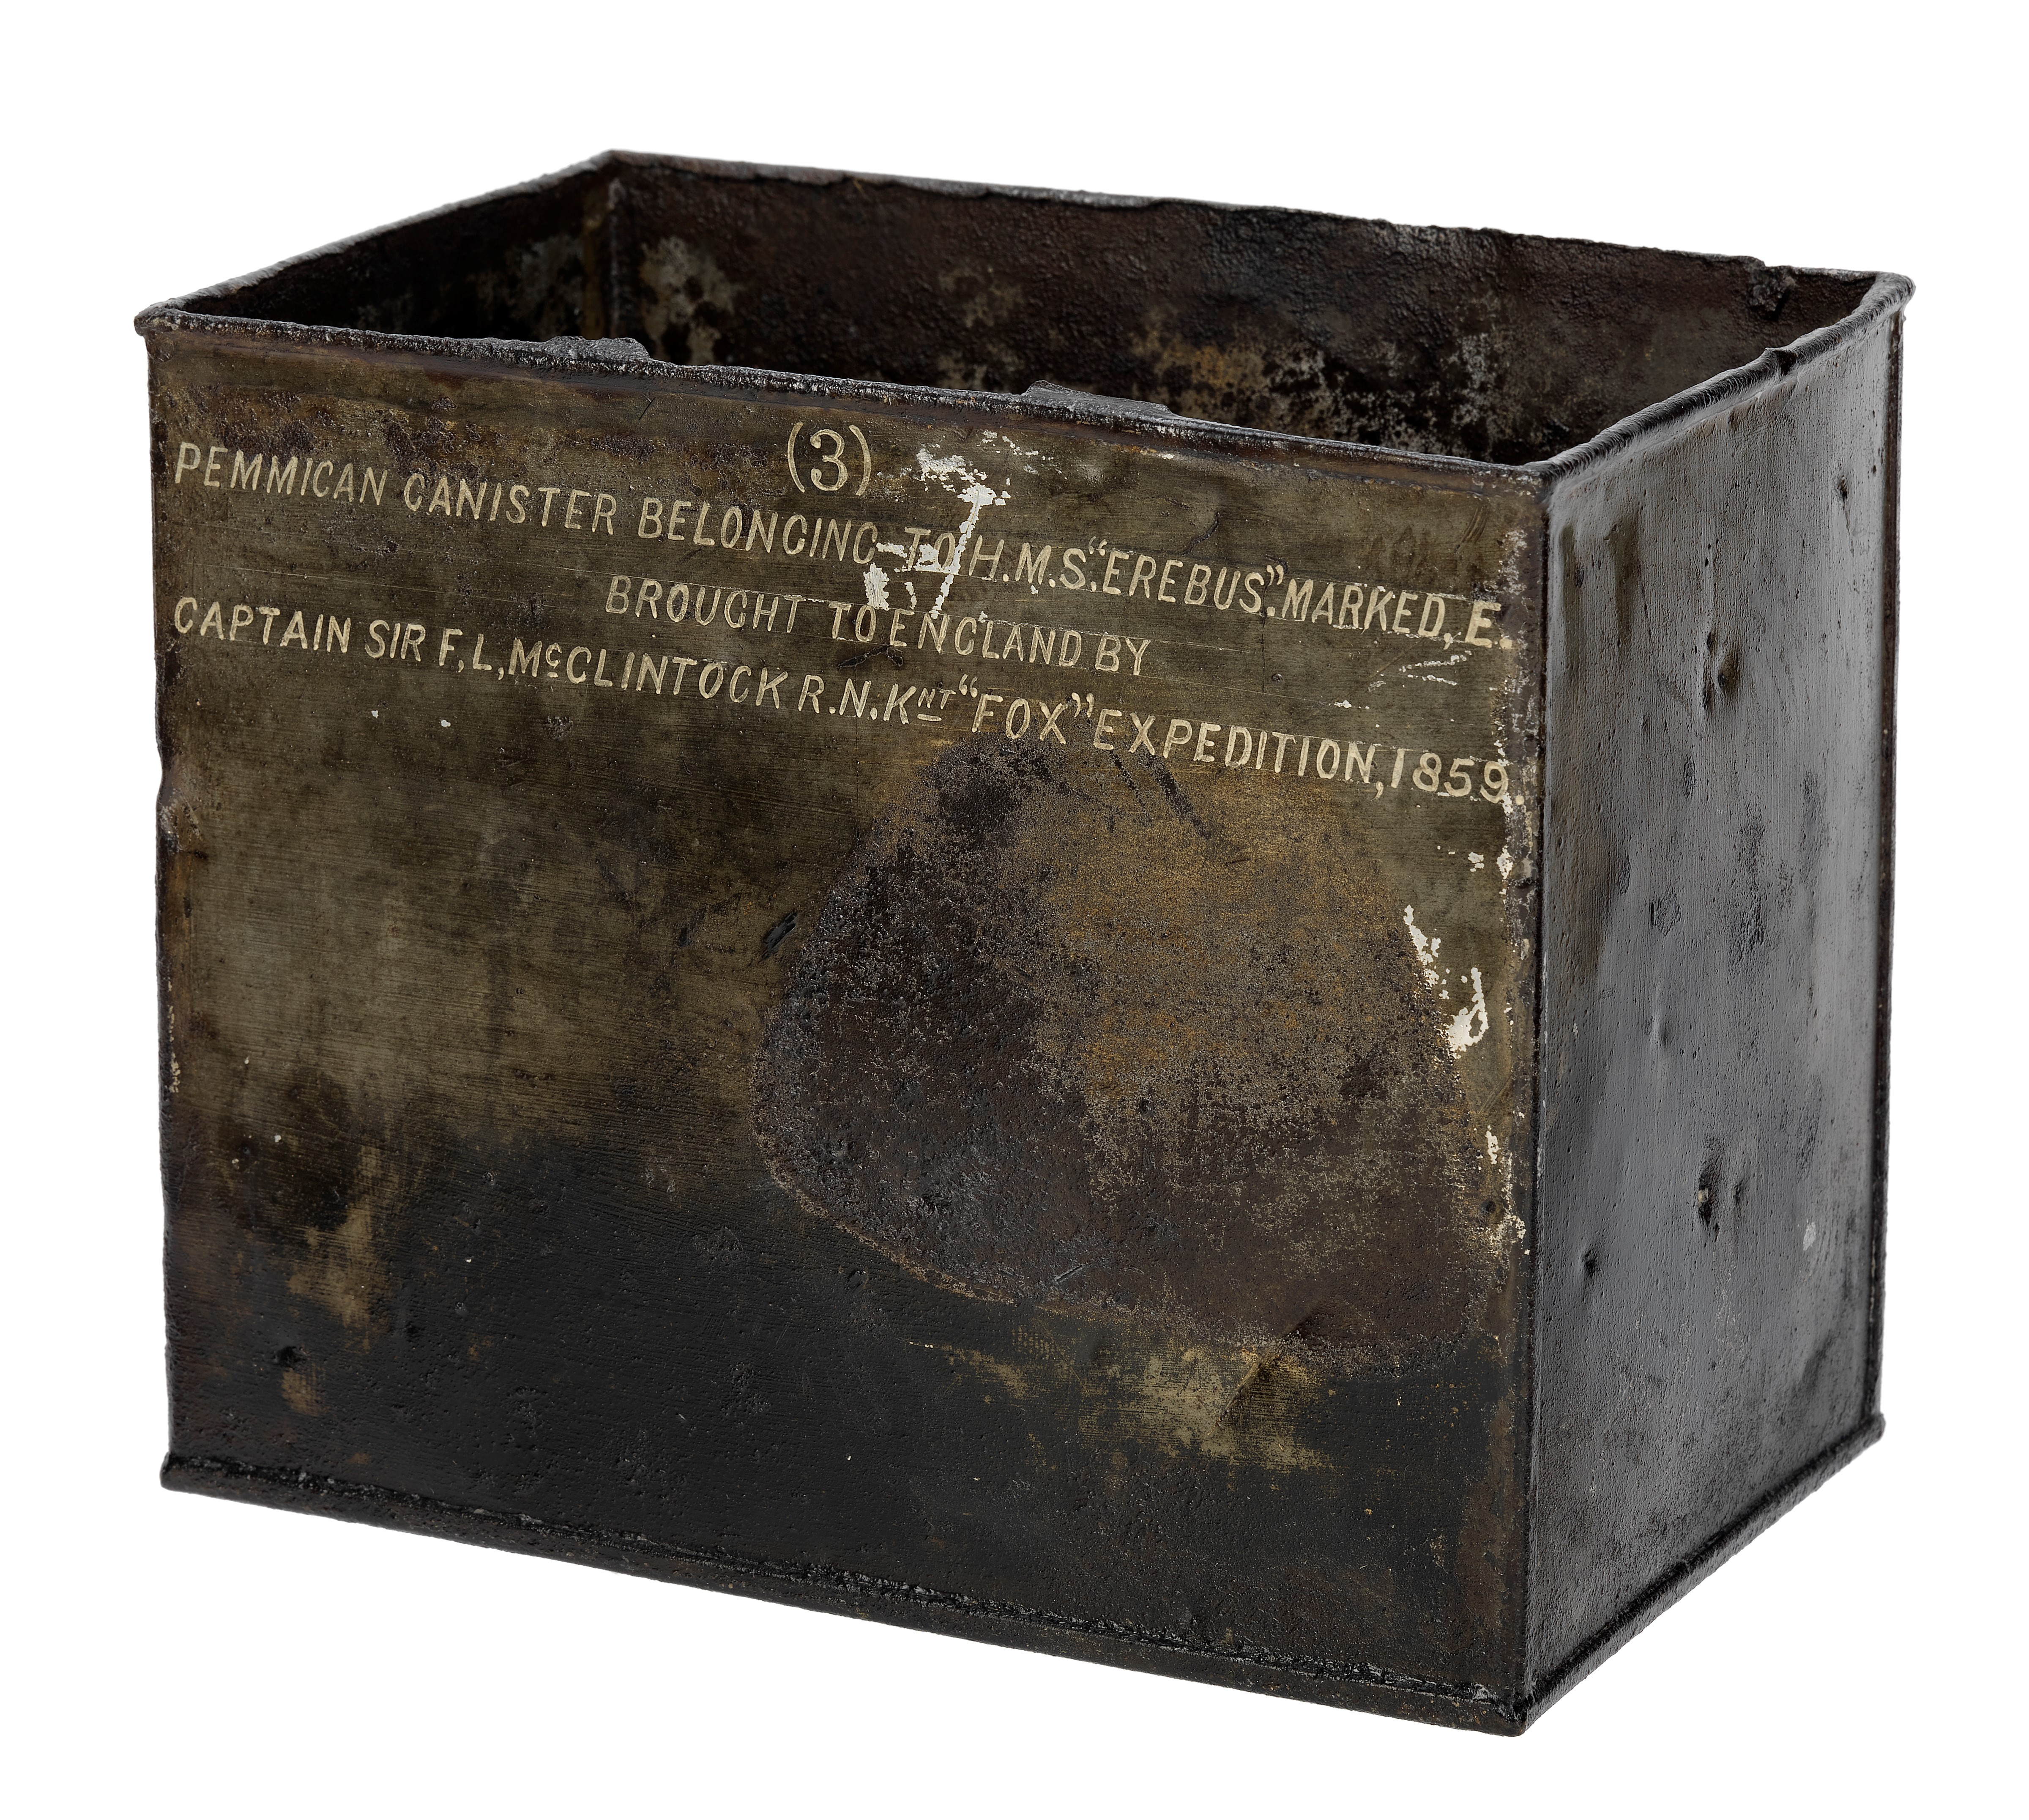 Pemmican tin from the Franklin expedition (AAA2196)